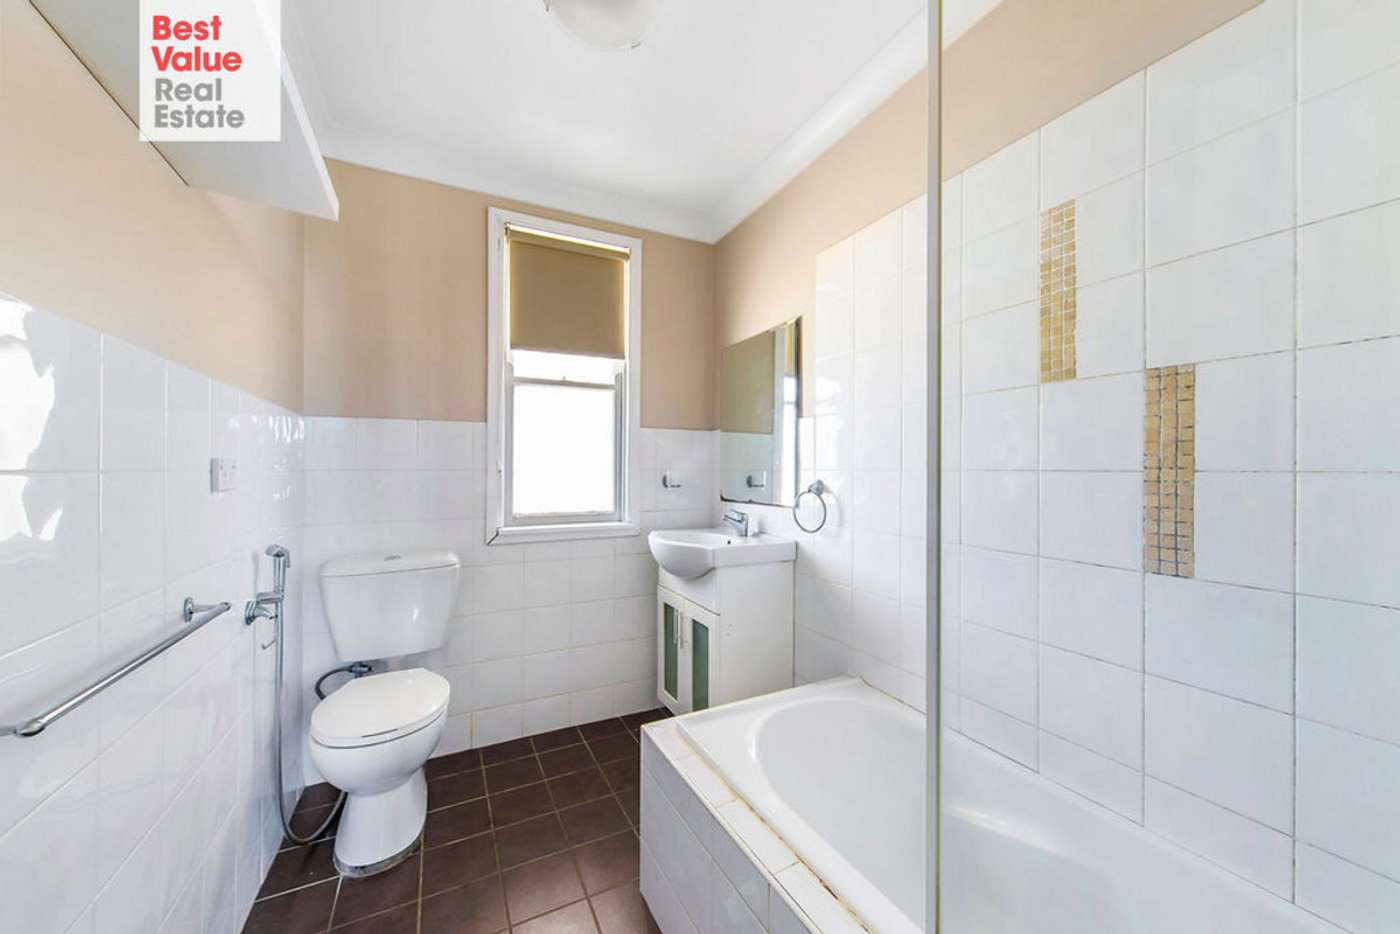 Seventh view of Homely house listing, 6 Amundsen Street, Tregear NSW 2770